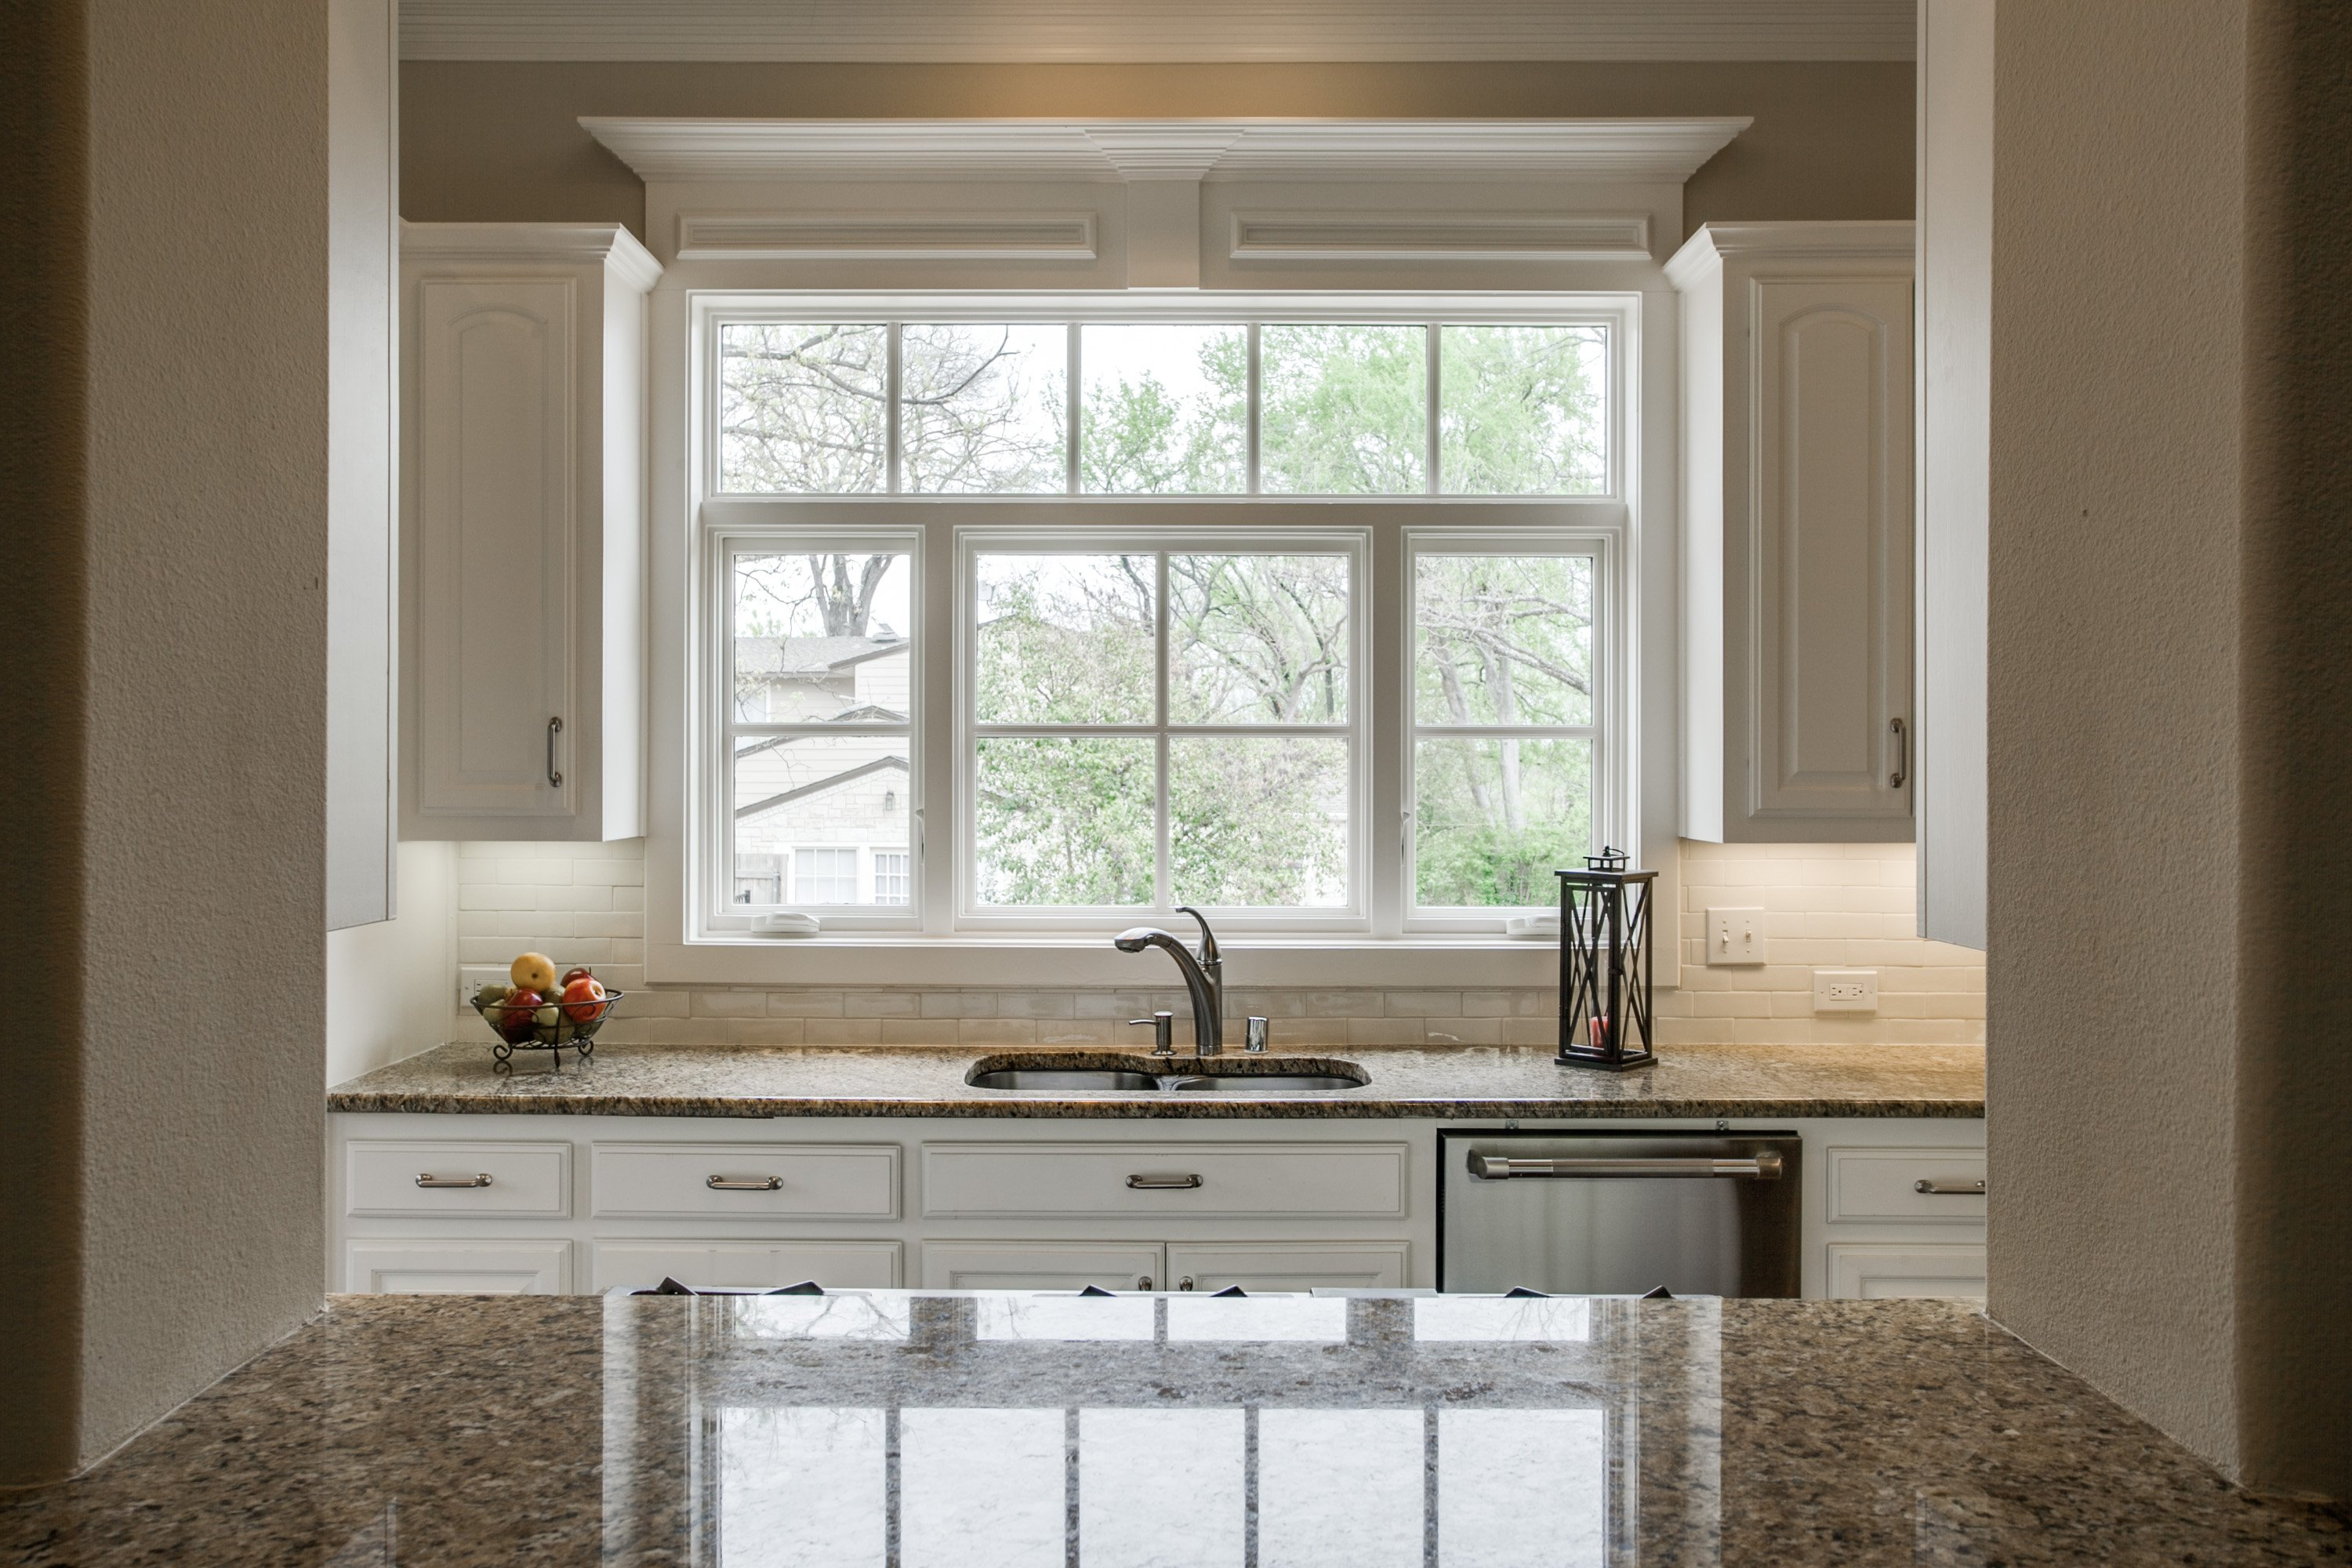 Kitchens with a Bright View